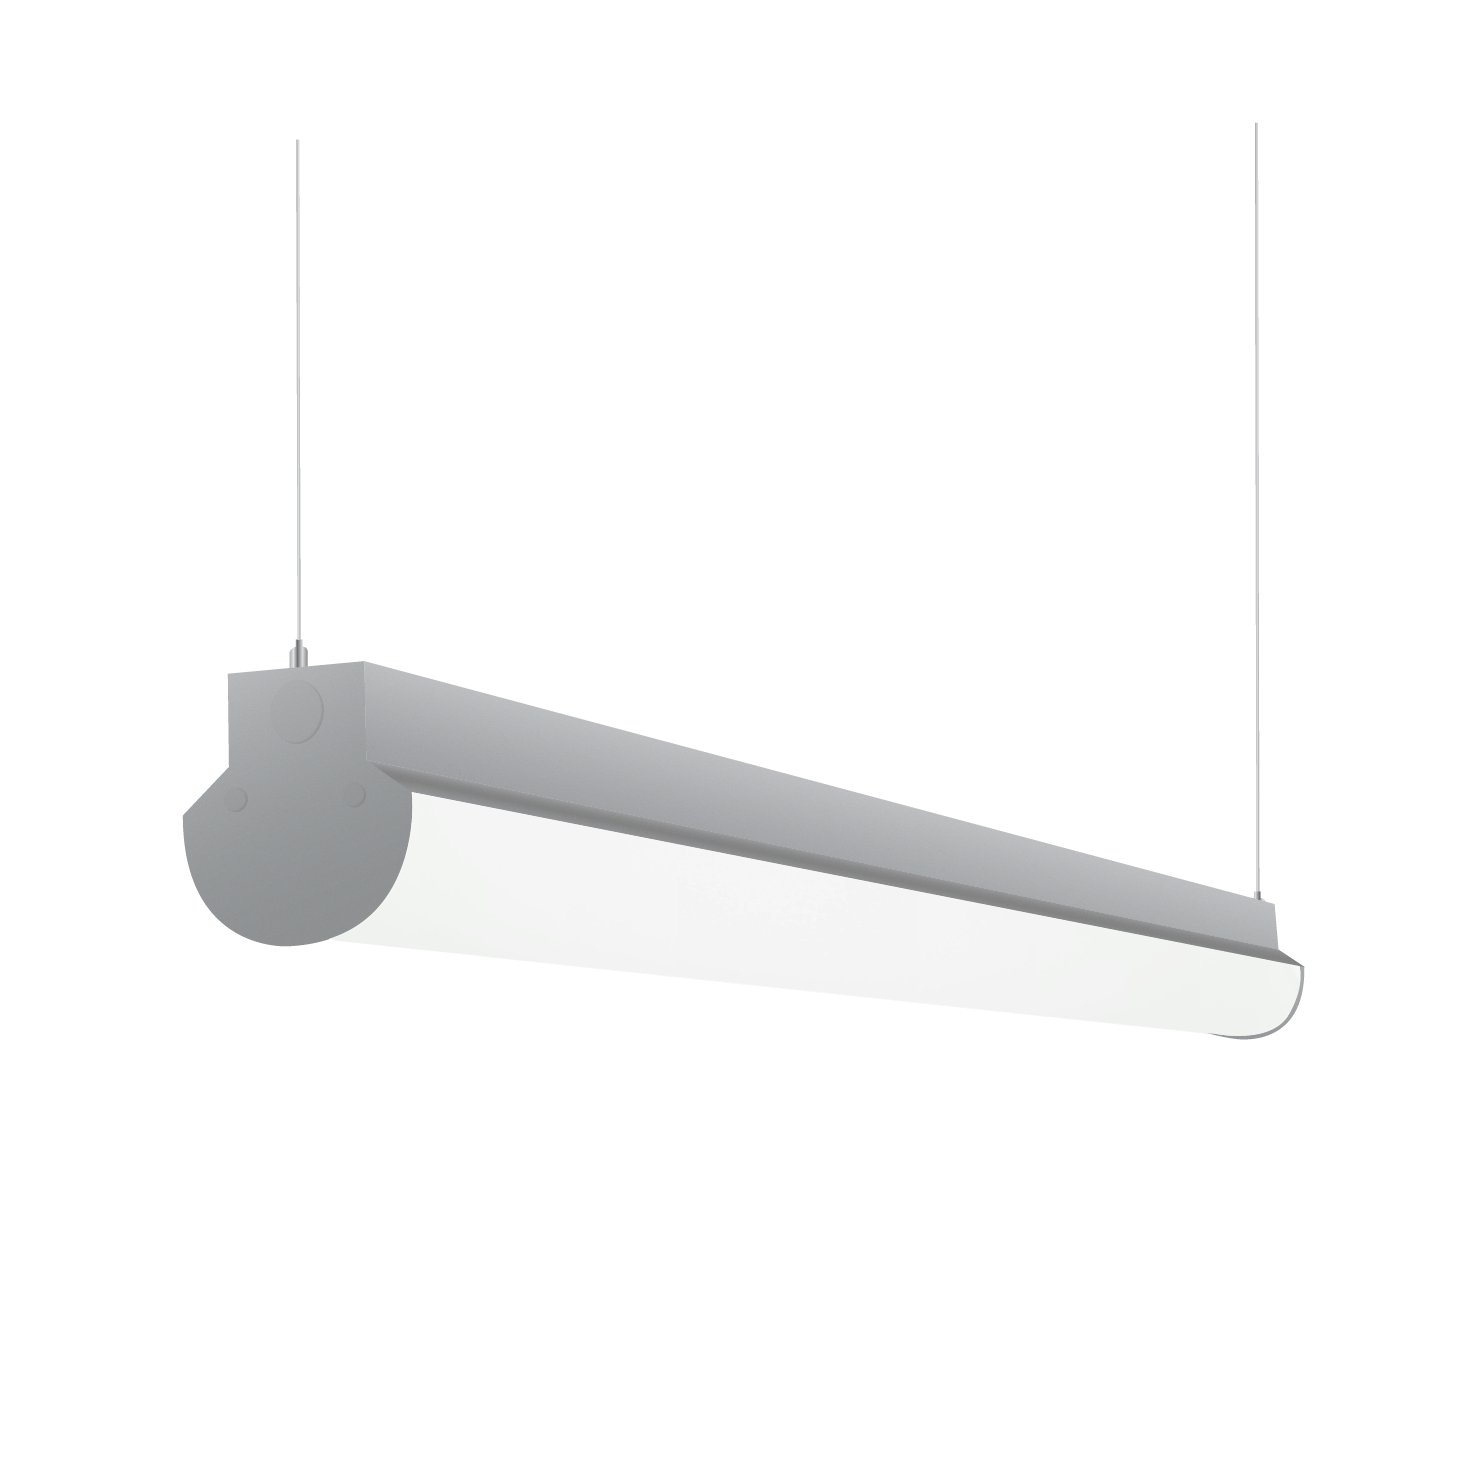 Lighting Fixtures Alcon Lighting 12122 4 Lombardy Industrial Series Commercial Led 4 Foot Linear Suspension Pendant Direct Down Light Strip